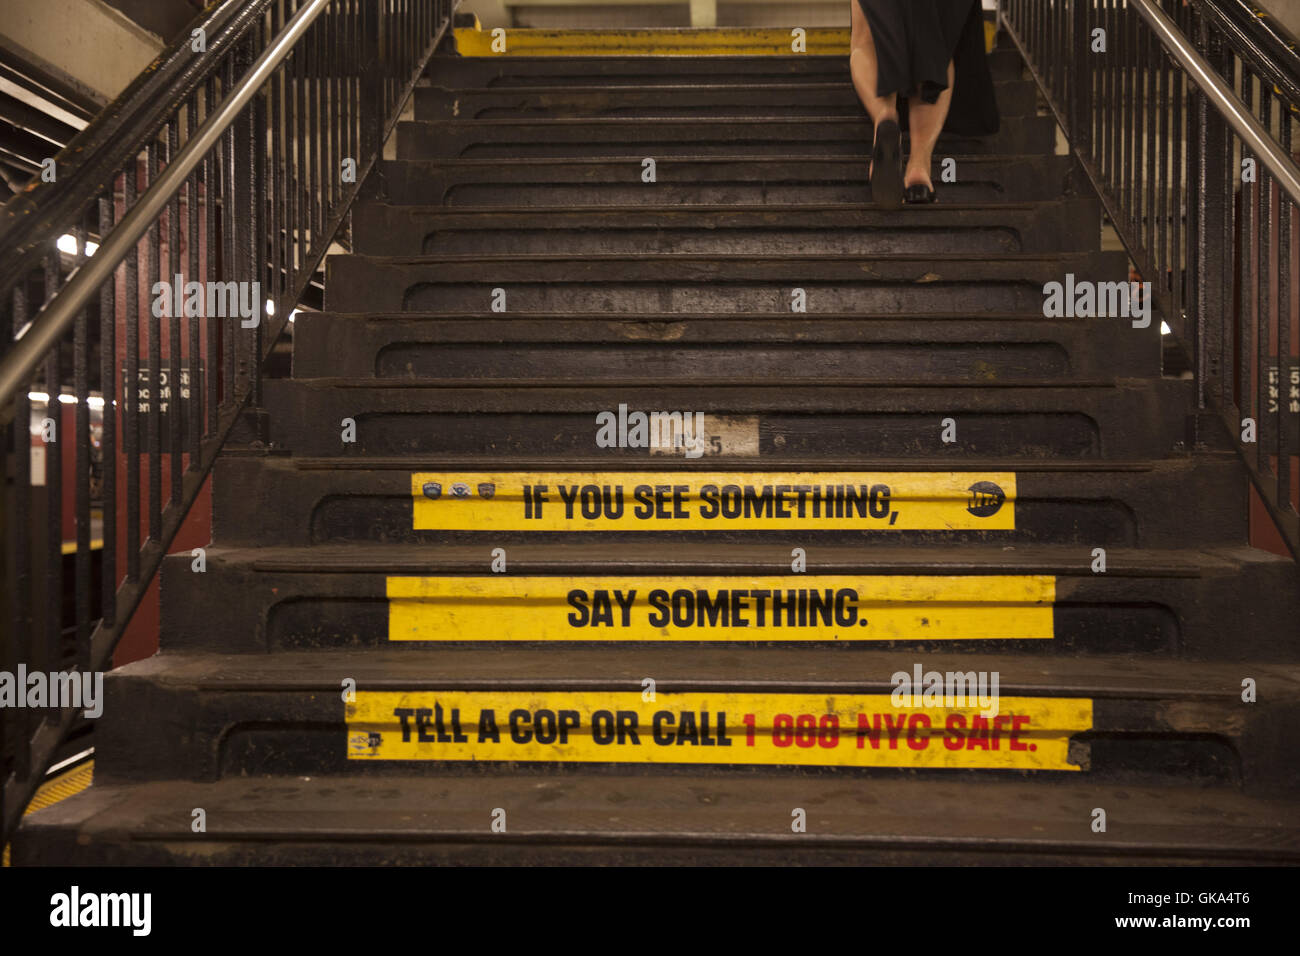 'IF You See Something Say Something' started showing up in the subway system after the 9/11 terrorist attack - Stock Image